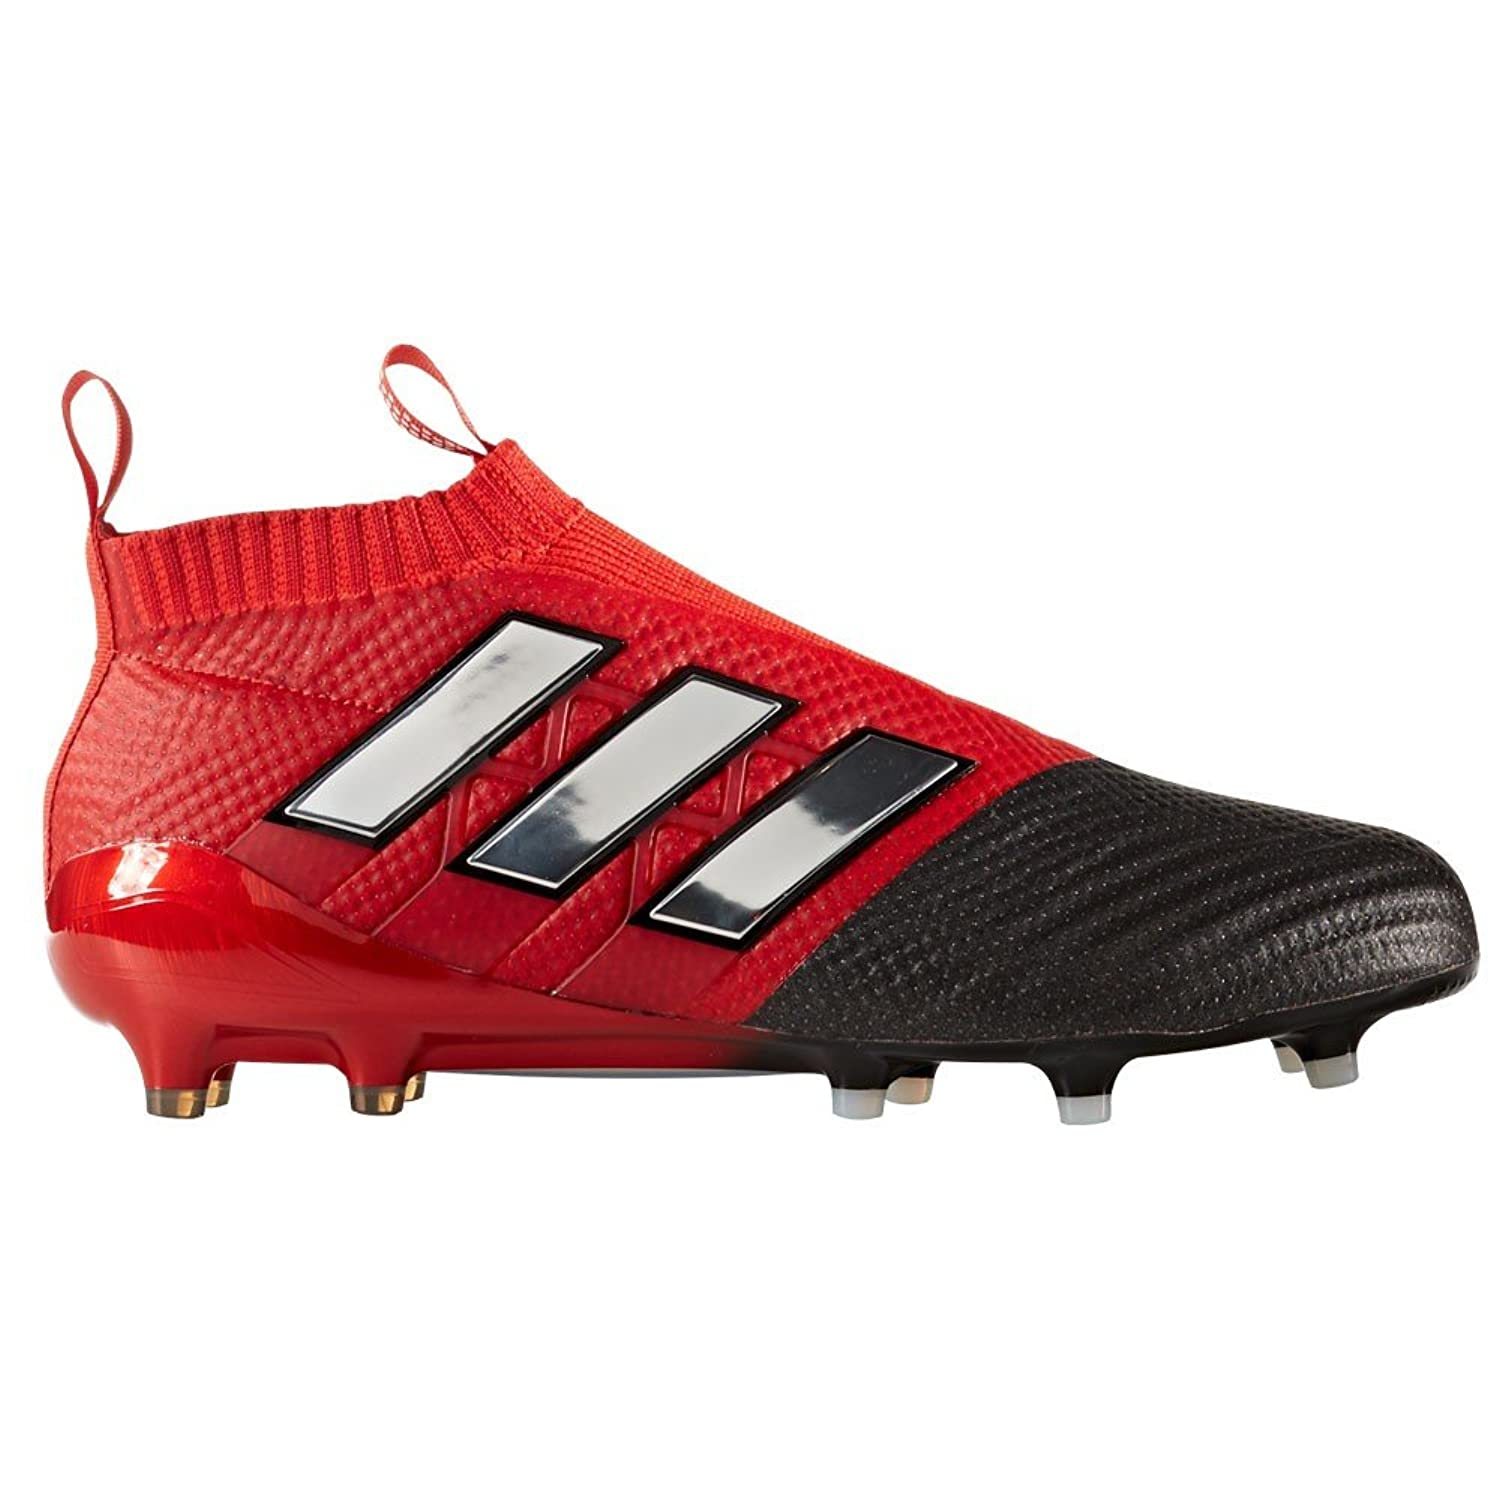 buy online 3f88d 898f6 ... cheap 2018 sneaker e0580 5b7fa Amazon.com adidas Ace 17+ PureControl  ... Adidas ACE 17.3 Primemesh Youth FG Soccer Cleats ...